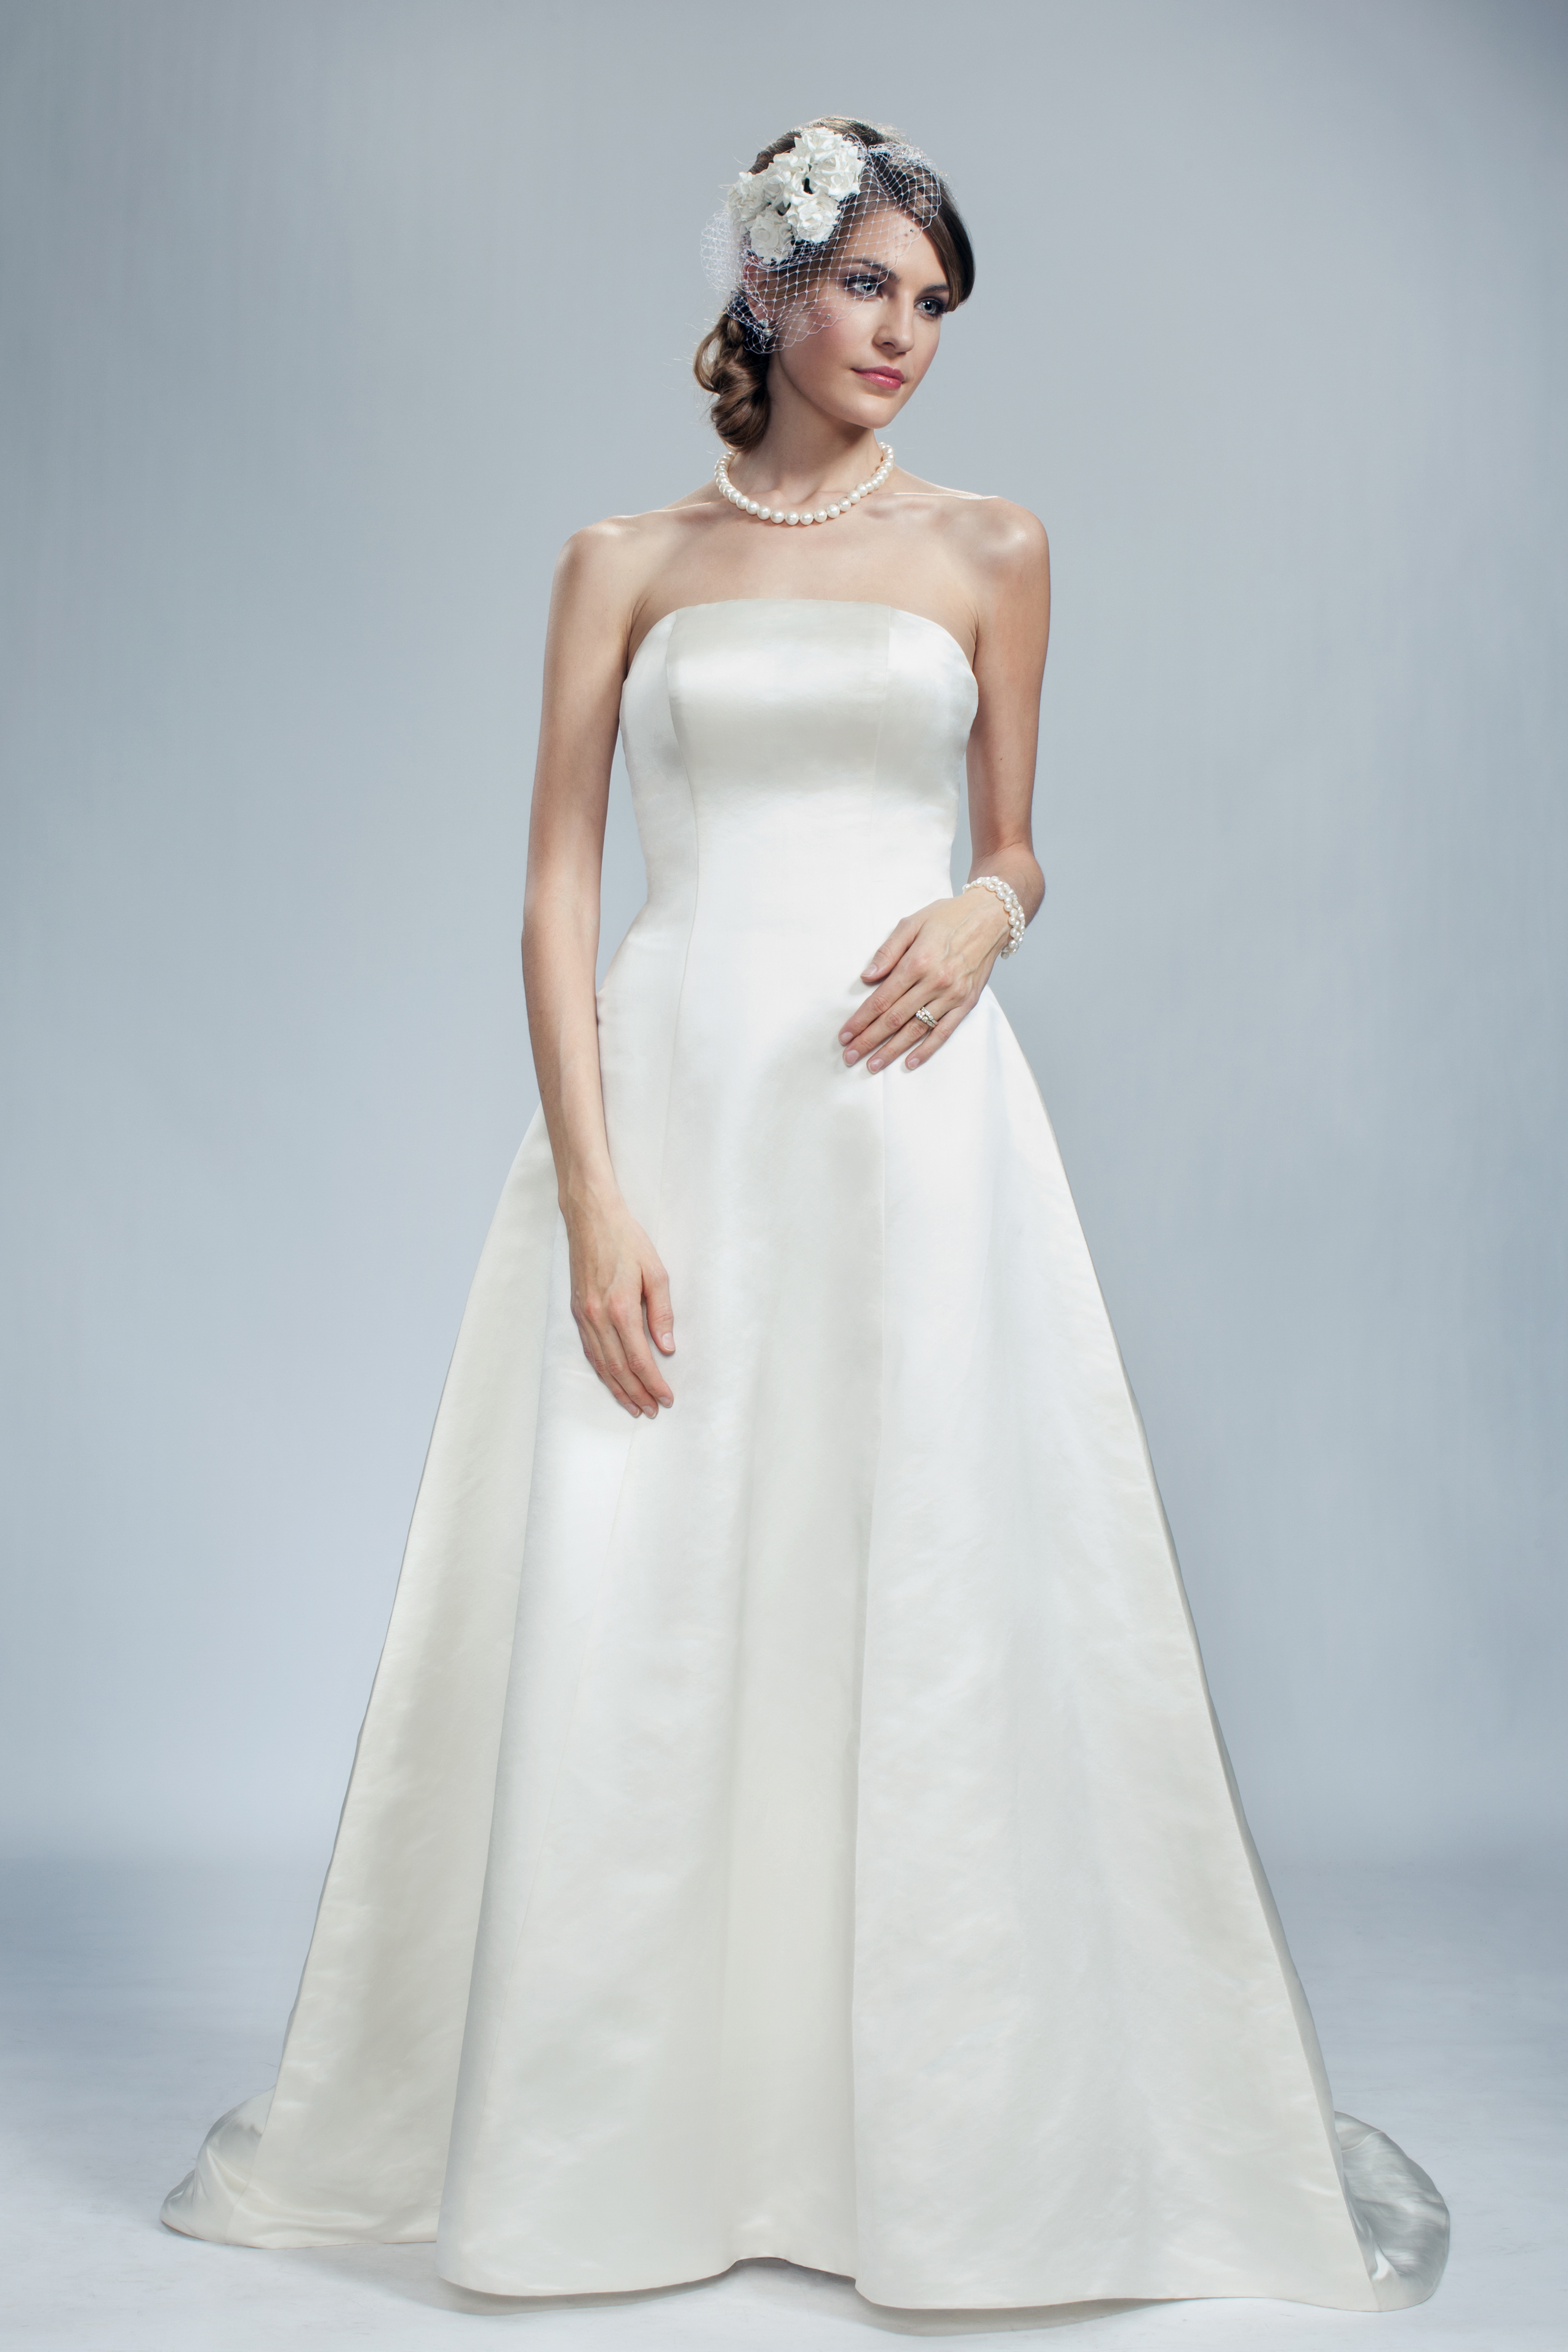 Wedding Dresses, A-line Wedding Dresses, Fashion, Classic, Strapless, Strapless Wedding Dresses, A-line, Princess, Satin, Olia zavozina, low back, Classic Wedding Dresses, duchess gown, satin buttons, satin wedding dresses